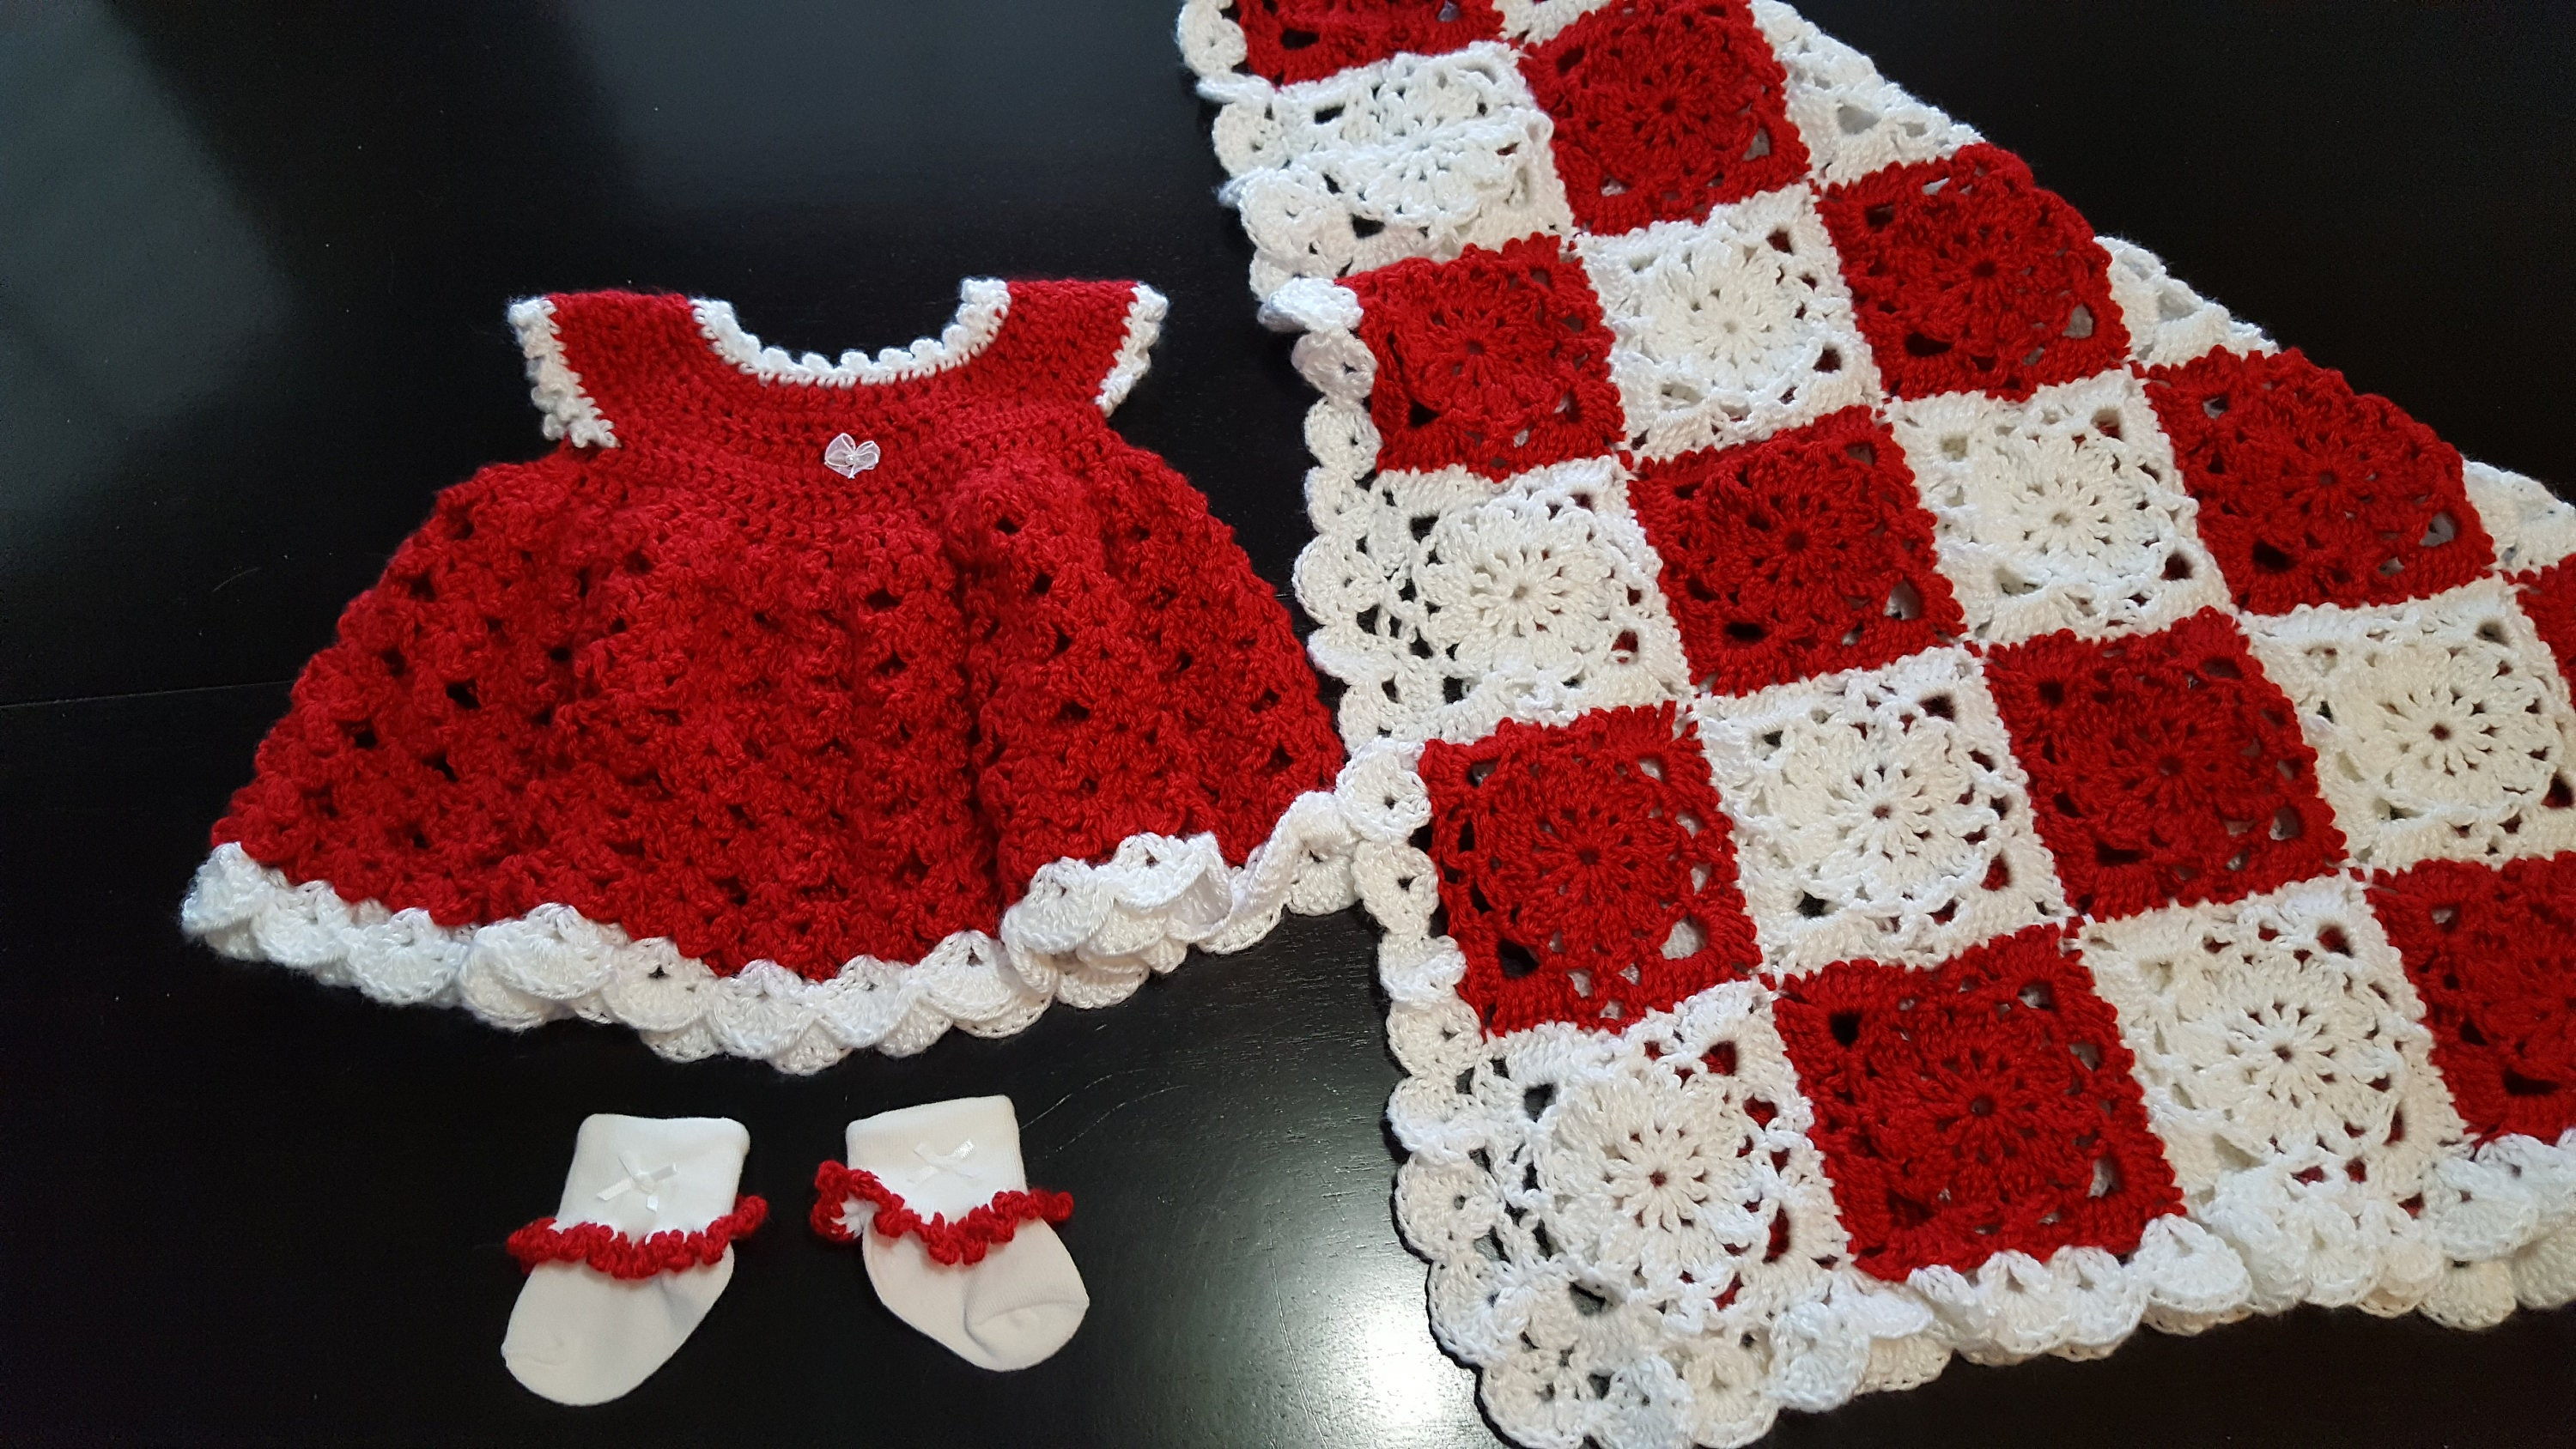 Crochet baby dress blanket and socks